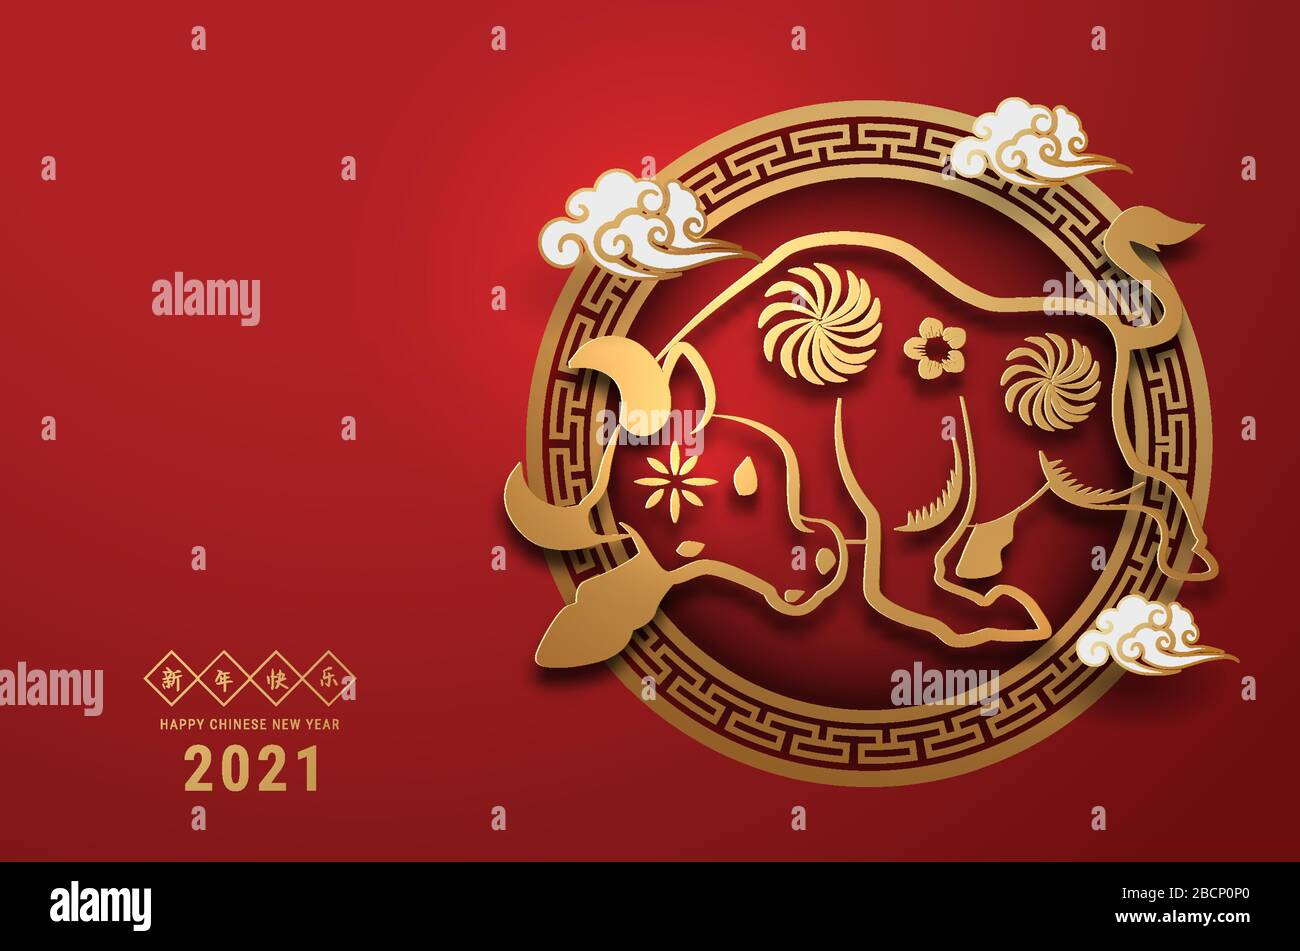 2021 Chinese New Year Greeting Card Zodiac Sign With Paper Cut Year Of The Ox Golden And Red Ornament Concept For Holiday Banner Template Decor El Stock Vector Image Art Alamy